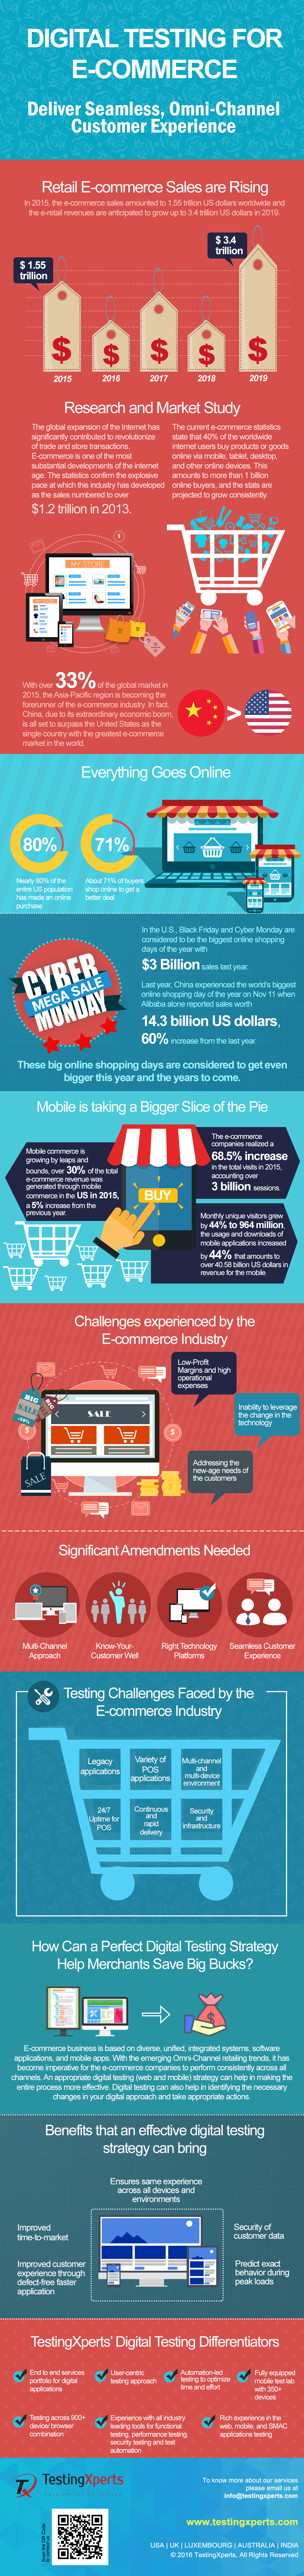 Infographic-digital-testing-for-e-commerce-deliver-seamless-omni-channel-customer-experience